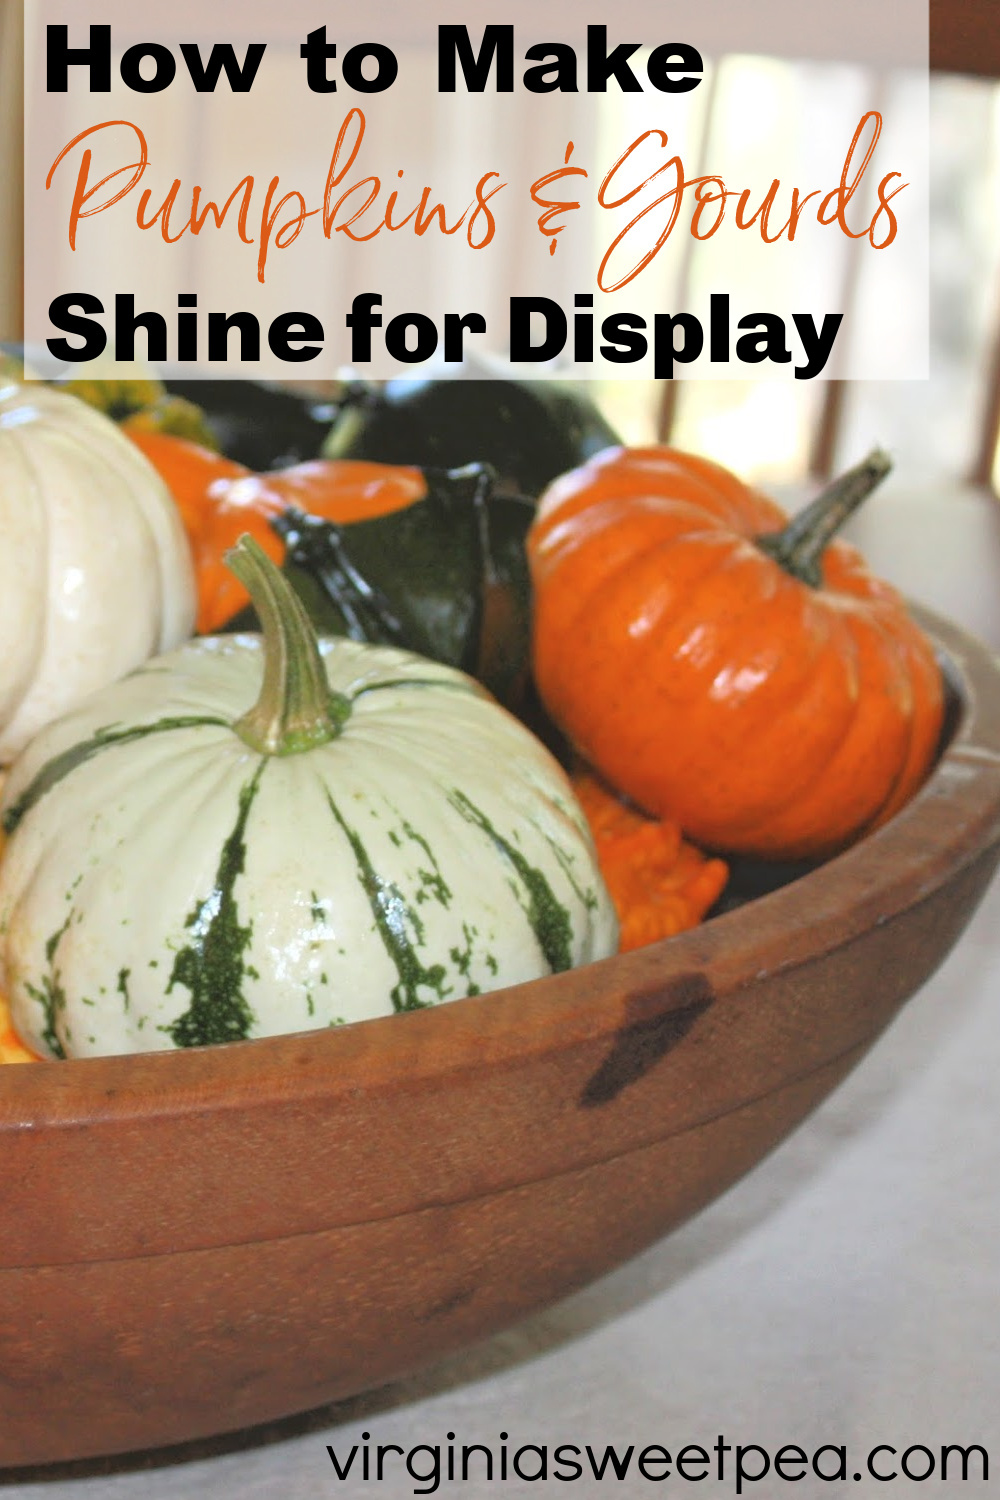 How to Make Pumpkins and Gourds Shine for Display